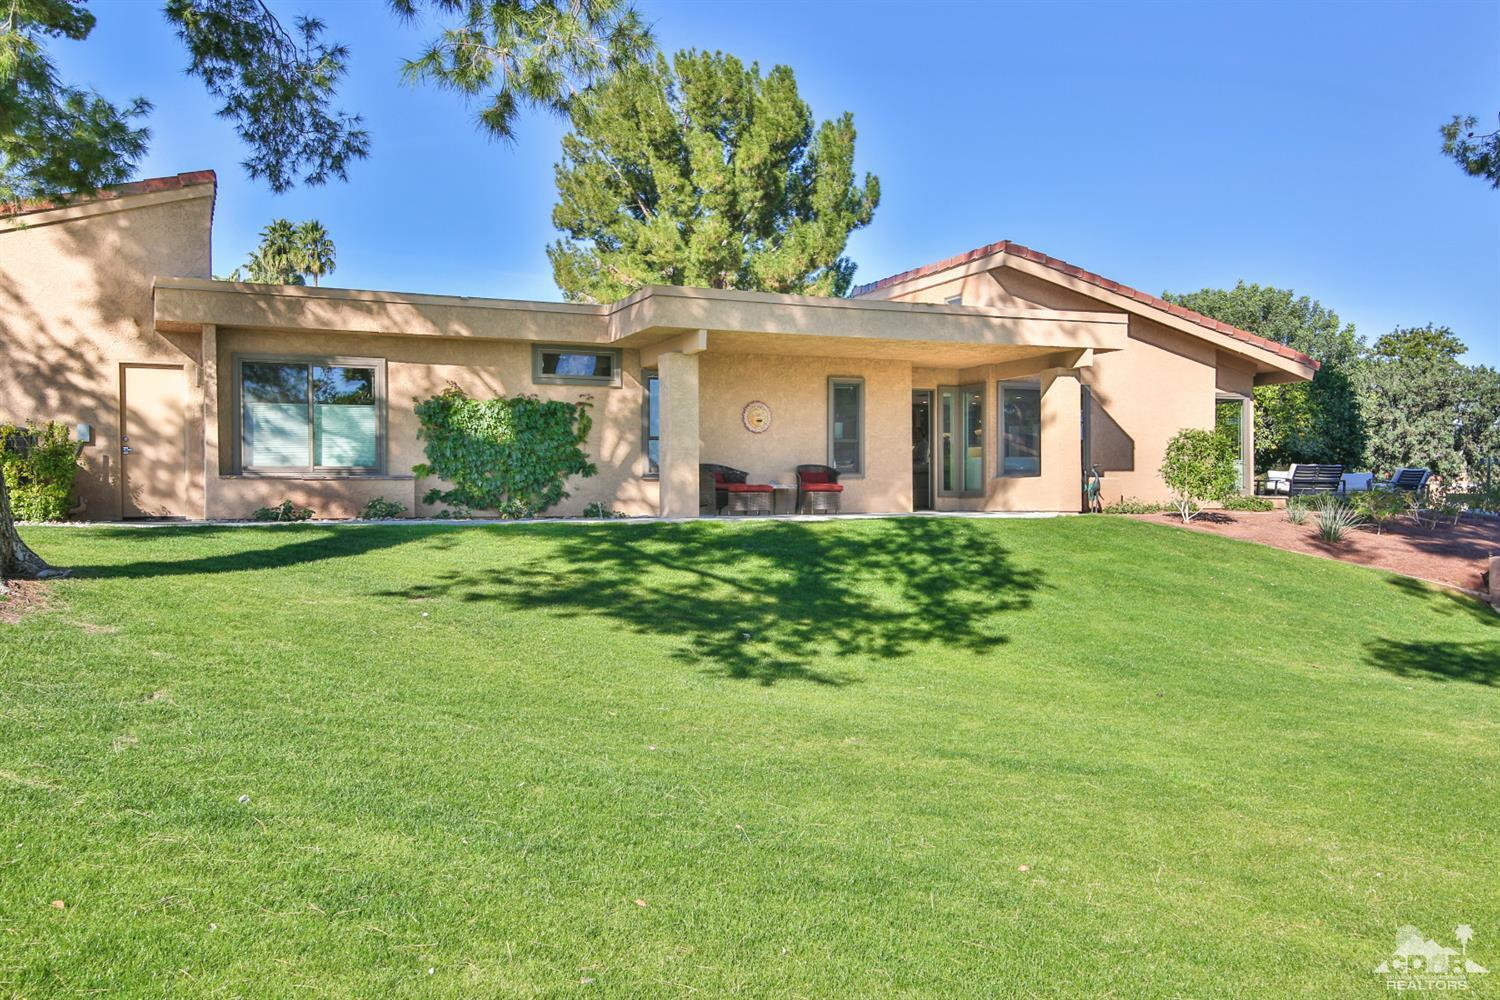 72550 Rolling Knoll, Palm Desert, California 92260, 3 Bedrooms Bedrooms, ,2 BathroomsBathrooms,Residential,For Sale,72550 Rolling Knoll,218031686